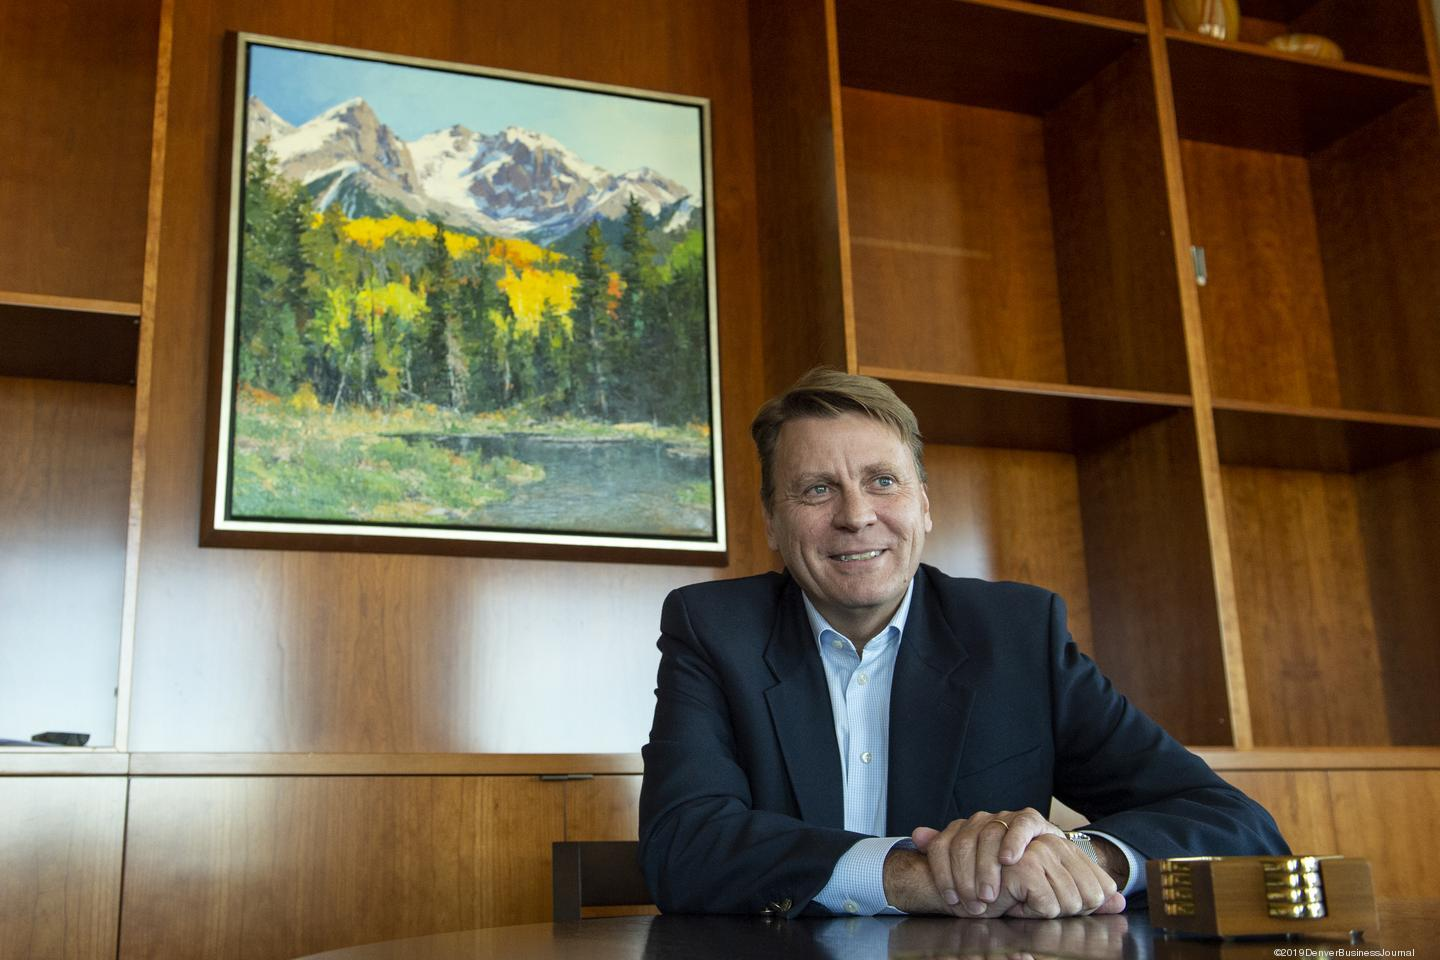 Newmont Goldcorp CEO: Here's how we plan to set up decades of gold production